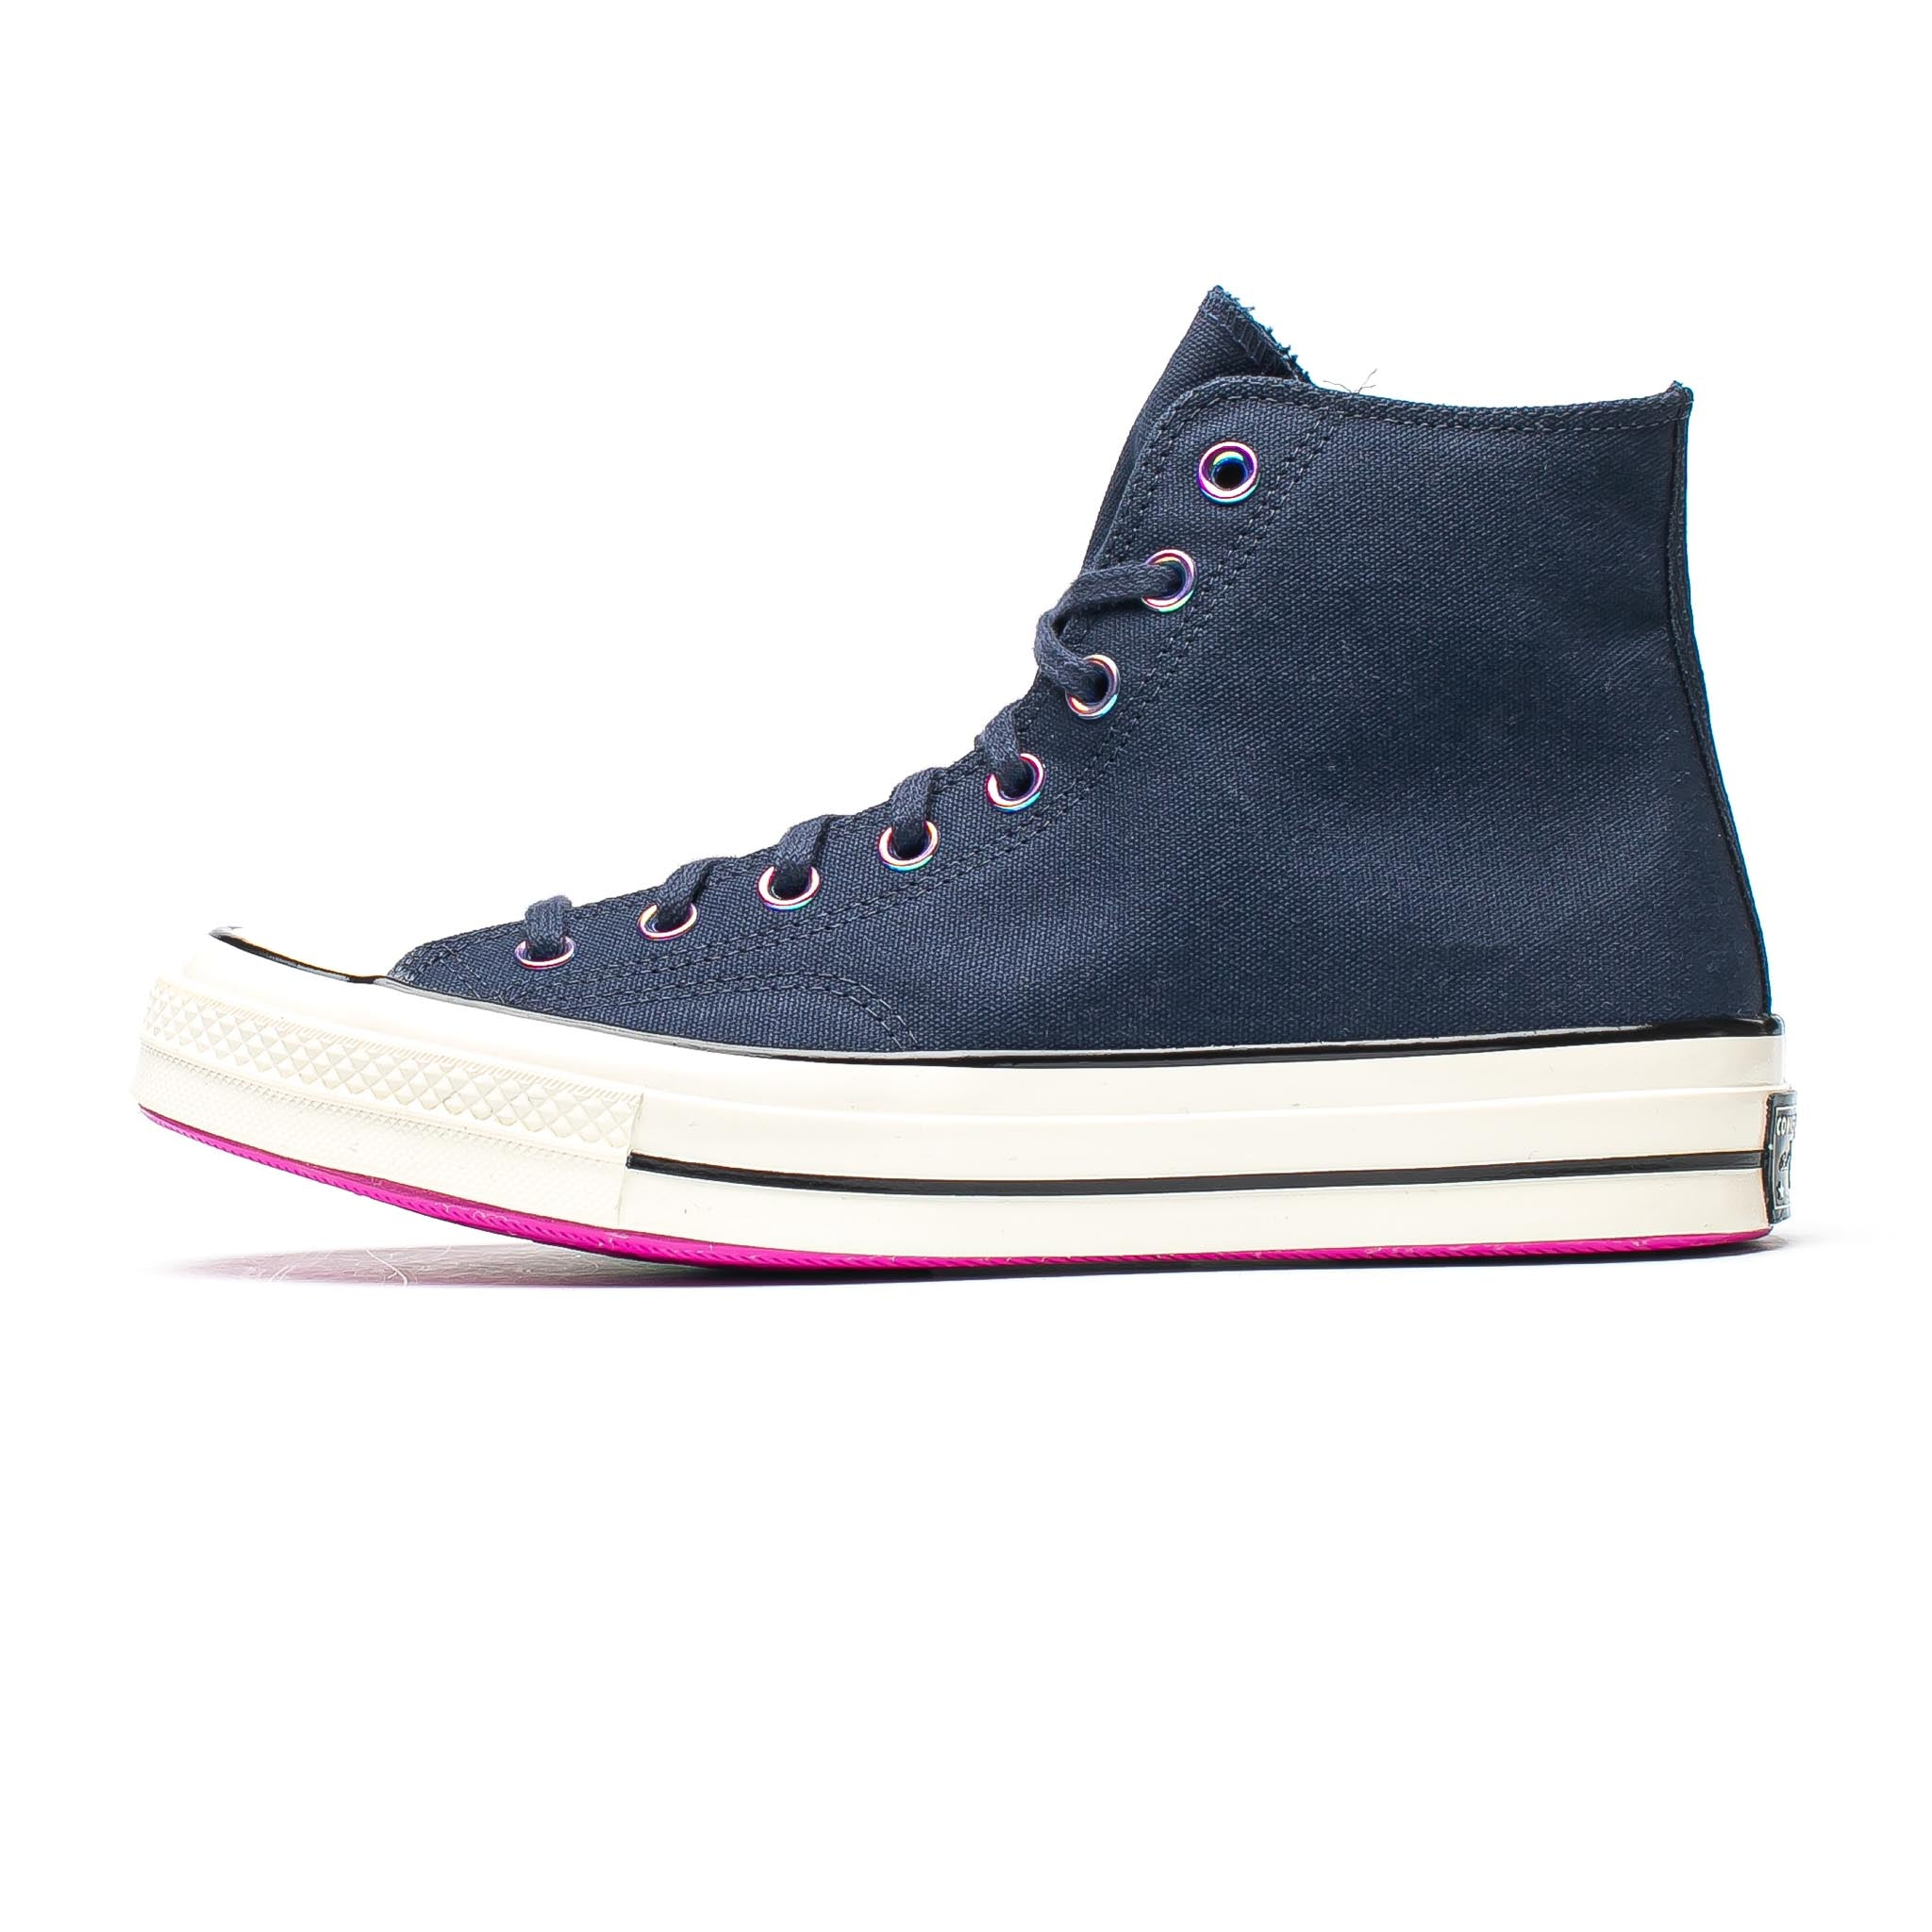 Converse Chuck 70 Hi 'Heart of the City' Obsidian